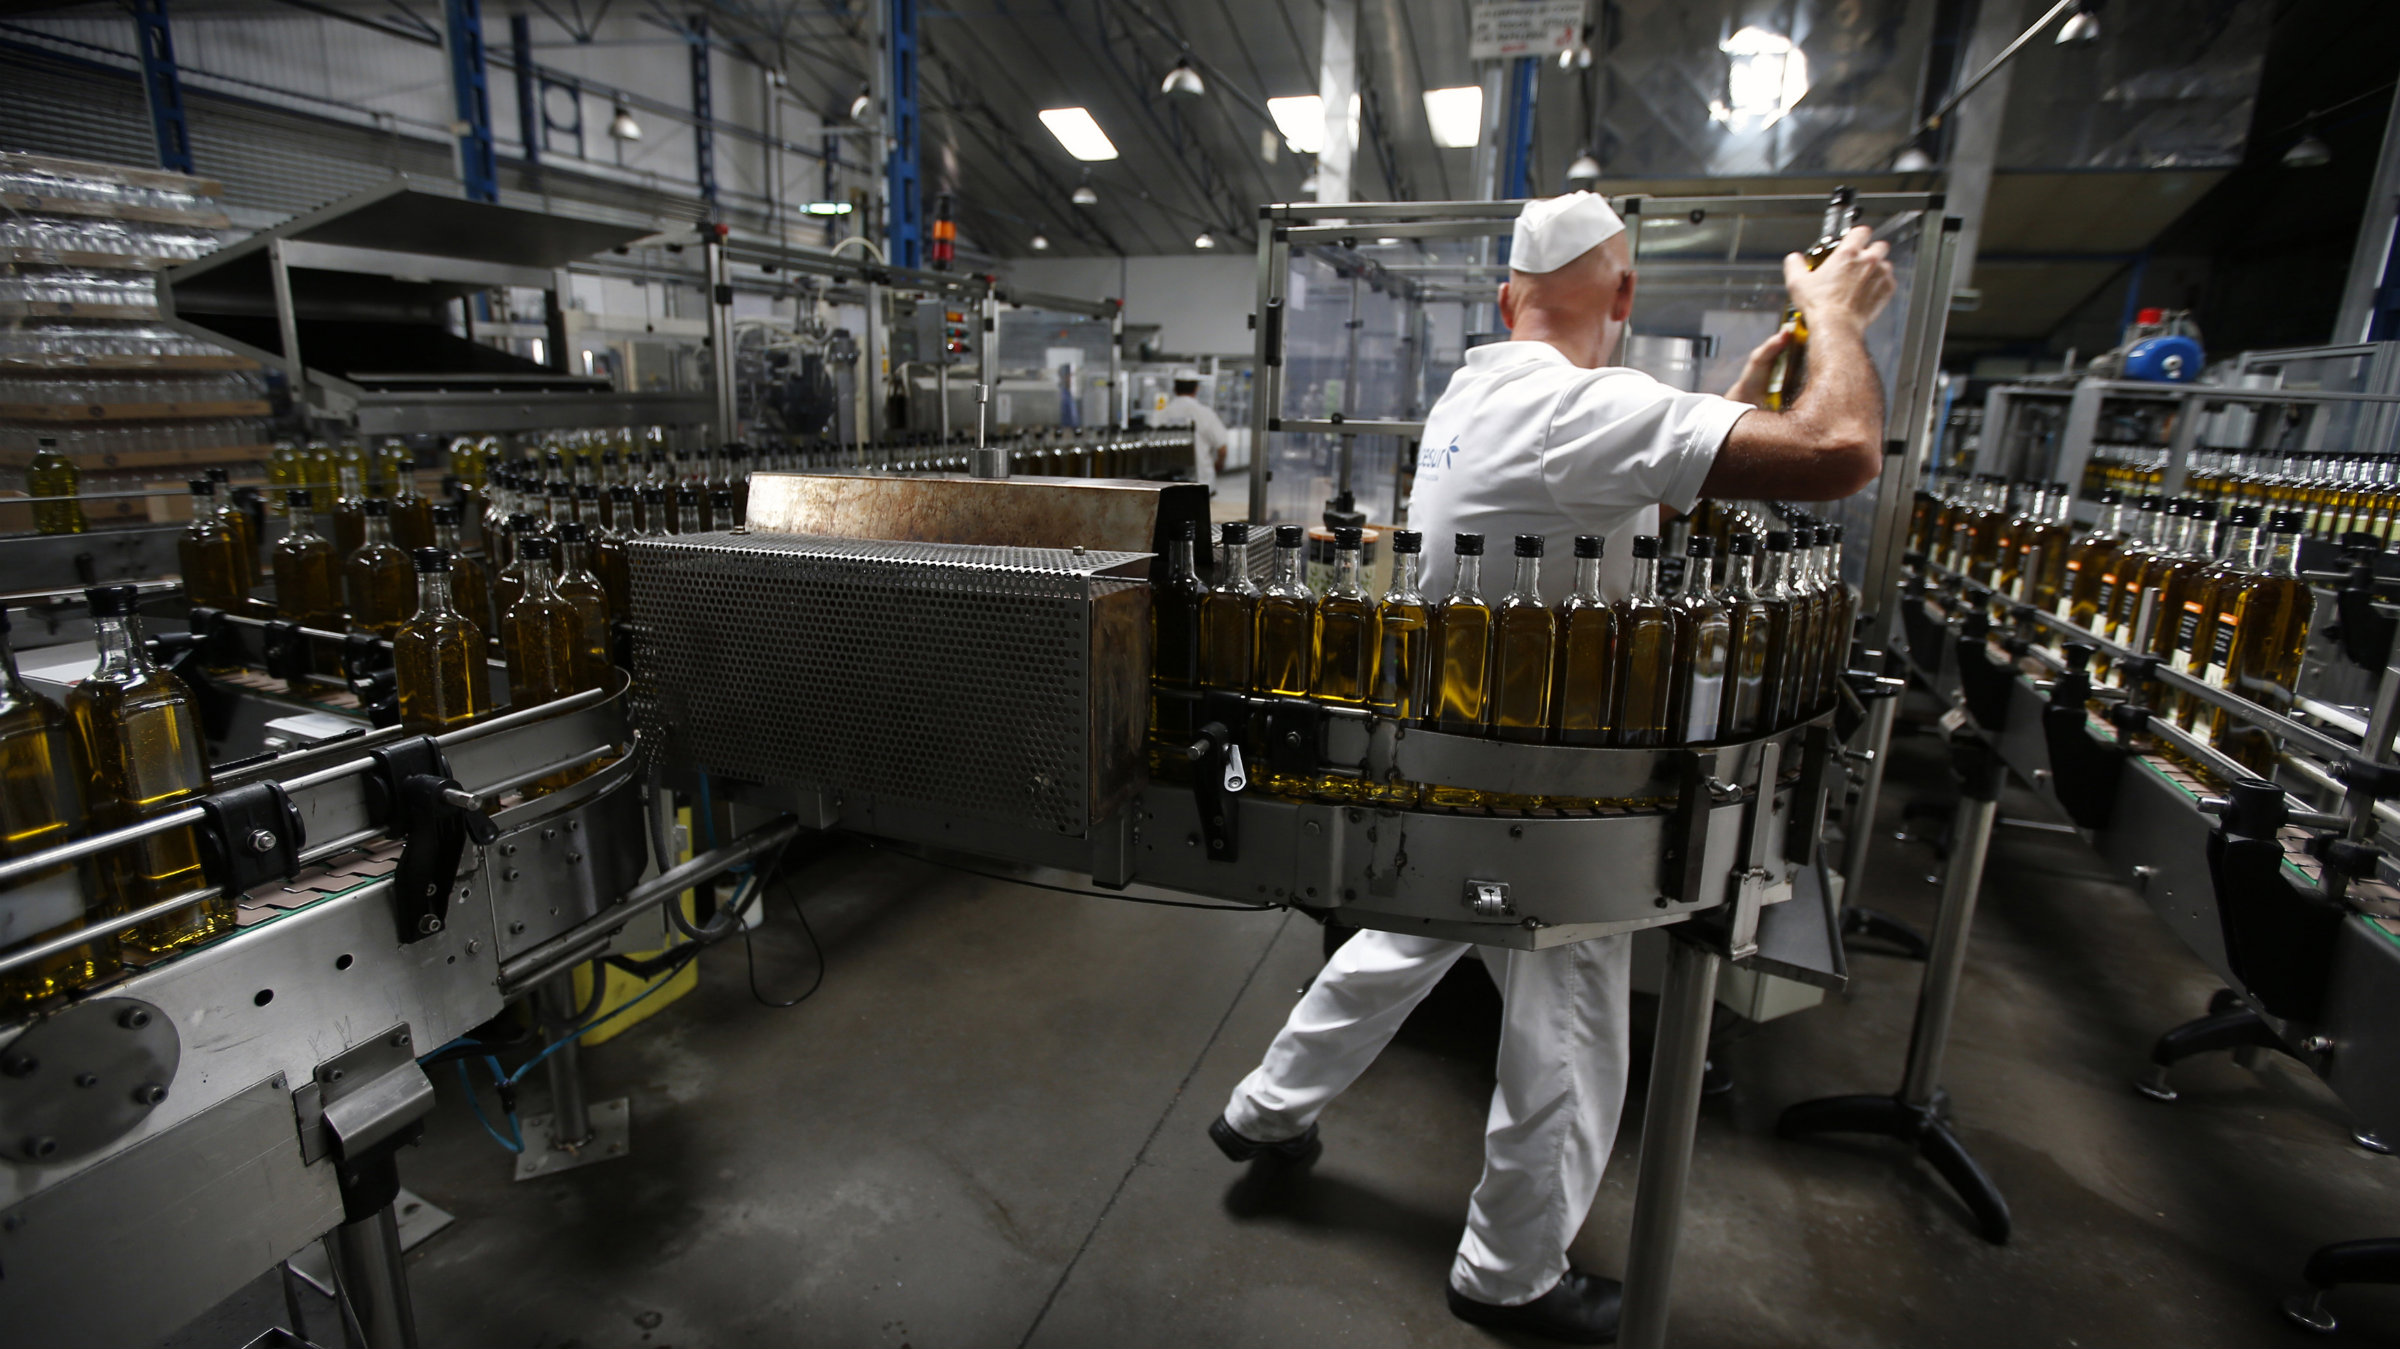 Spain is the world's largest olive oil producer, and sales are picking up.